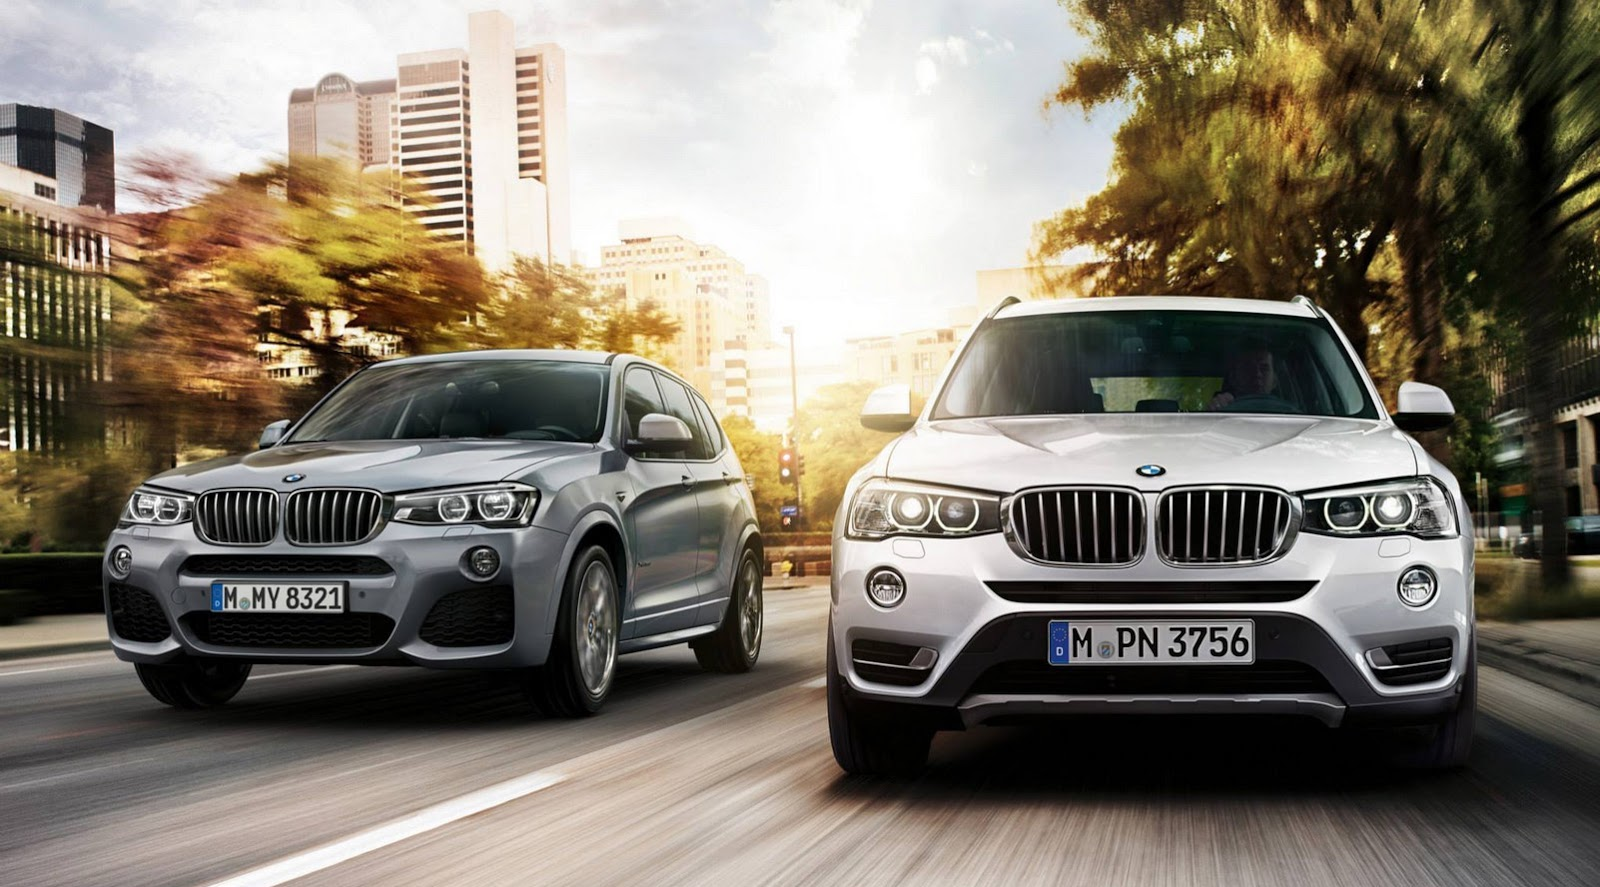 2014 Bmw X3 M Sport Lci First Shot Of Kitted Up F25